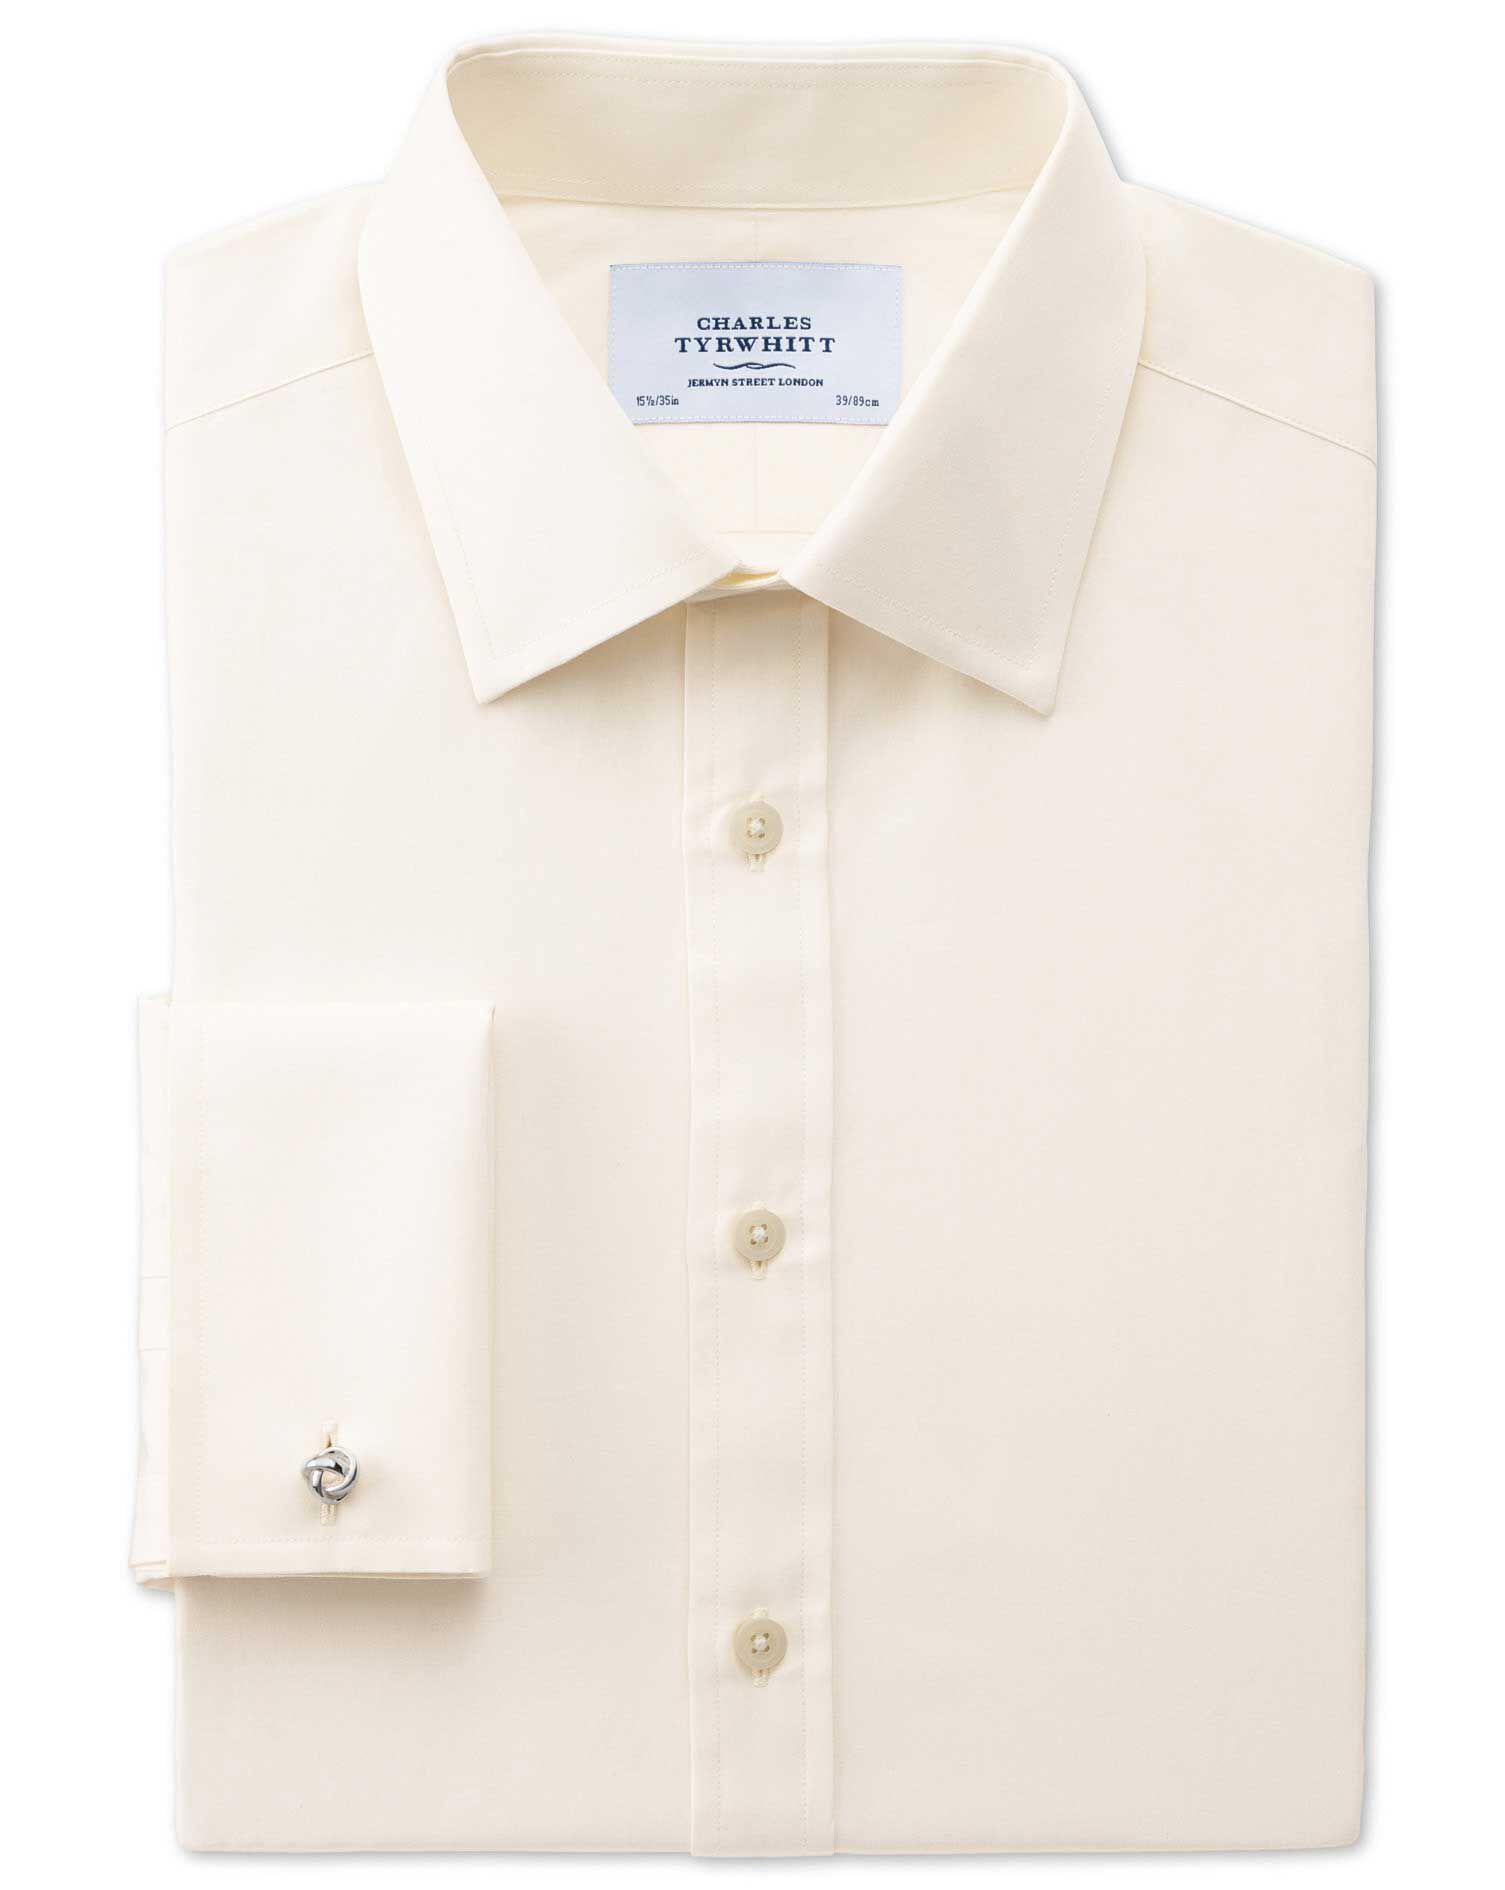 Slim Fit End-On-End Cream Cotton Formal Shirt Single Cuff Size 16/38 by Charles Tyrwhitt